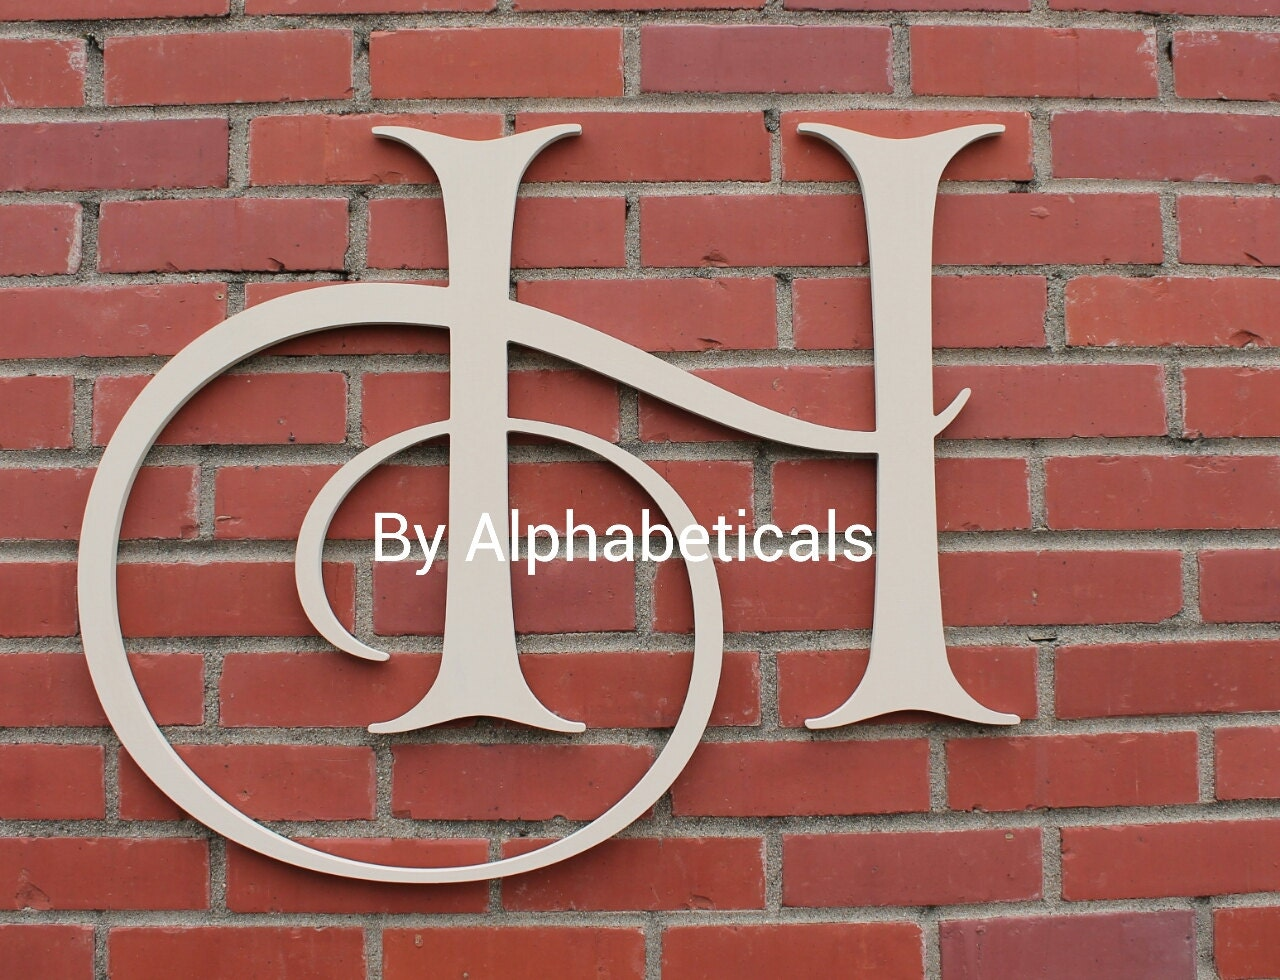 H wall decor wooden letters decorative wall by alphabeticals Wall letters decor